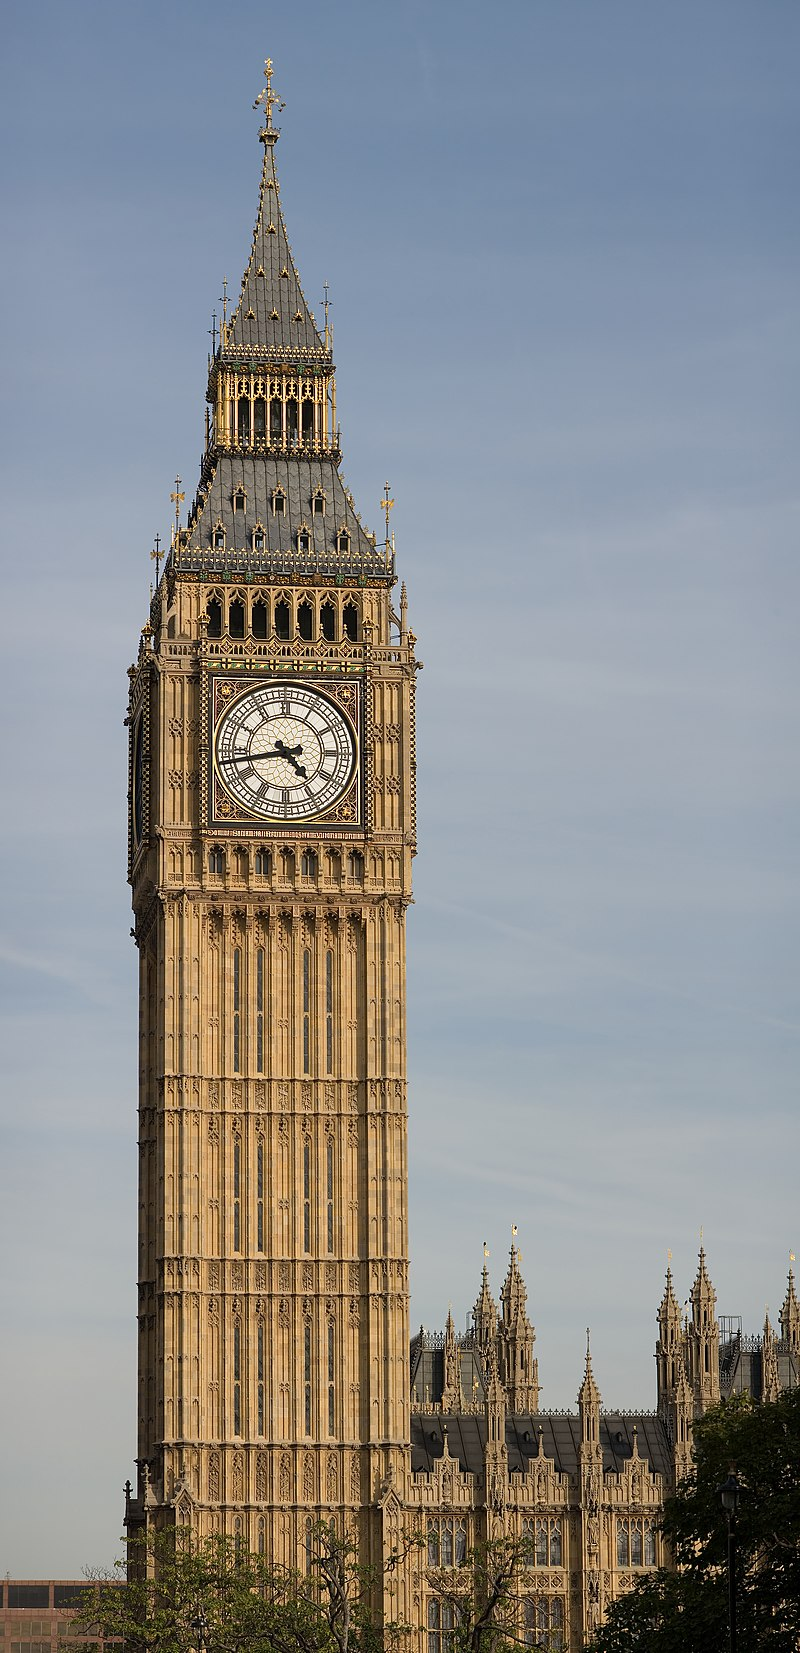 800px-Clock_Tower_-_Palace_of_Westminster%2C_London_-_September_2006.jpg